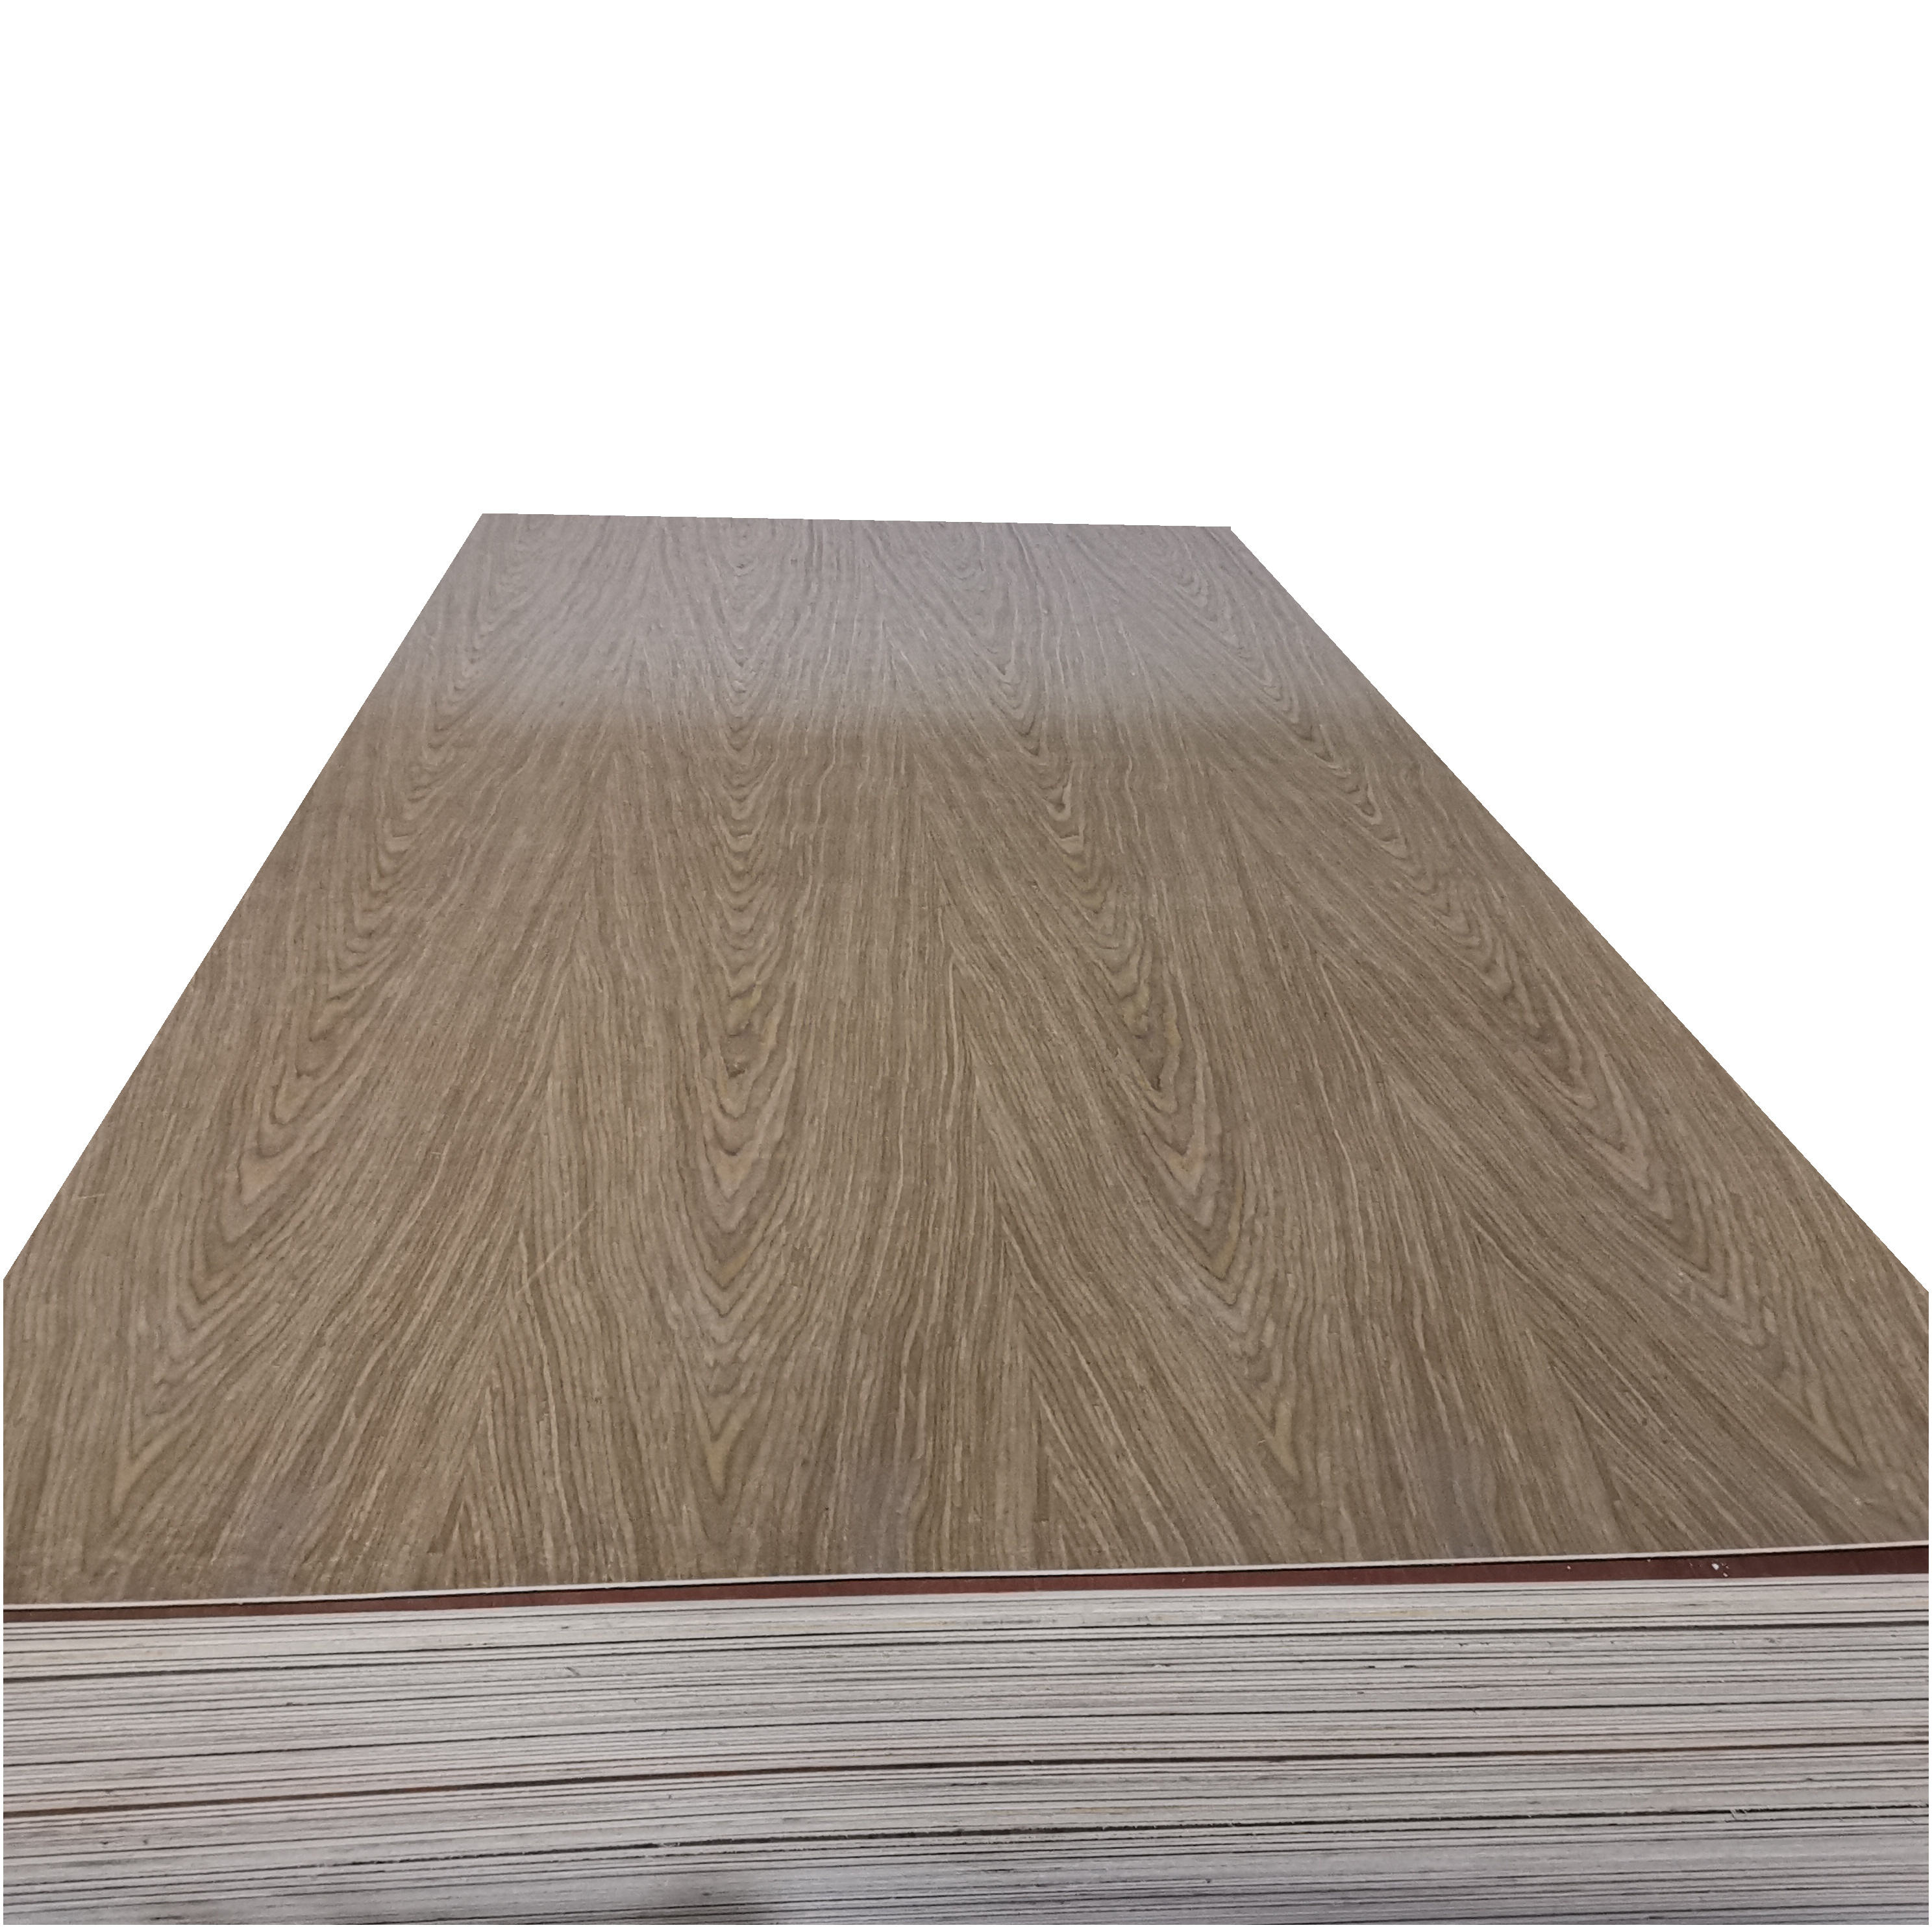 China Teak Wood In Burma China Teak Wood In Burma Manufacturers And Suppliers On Alibaba Com